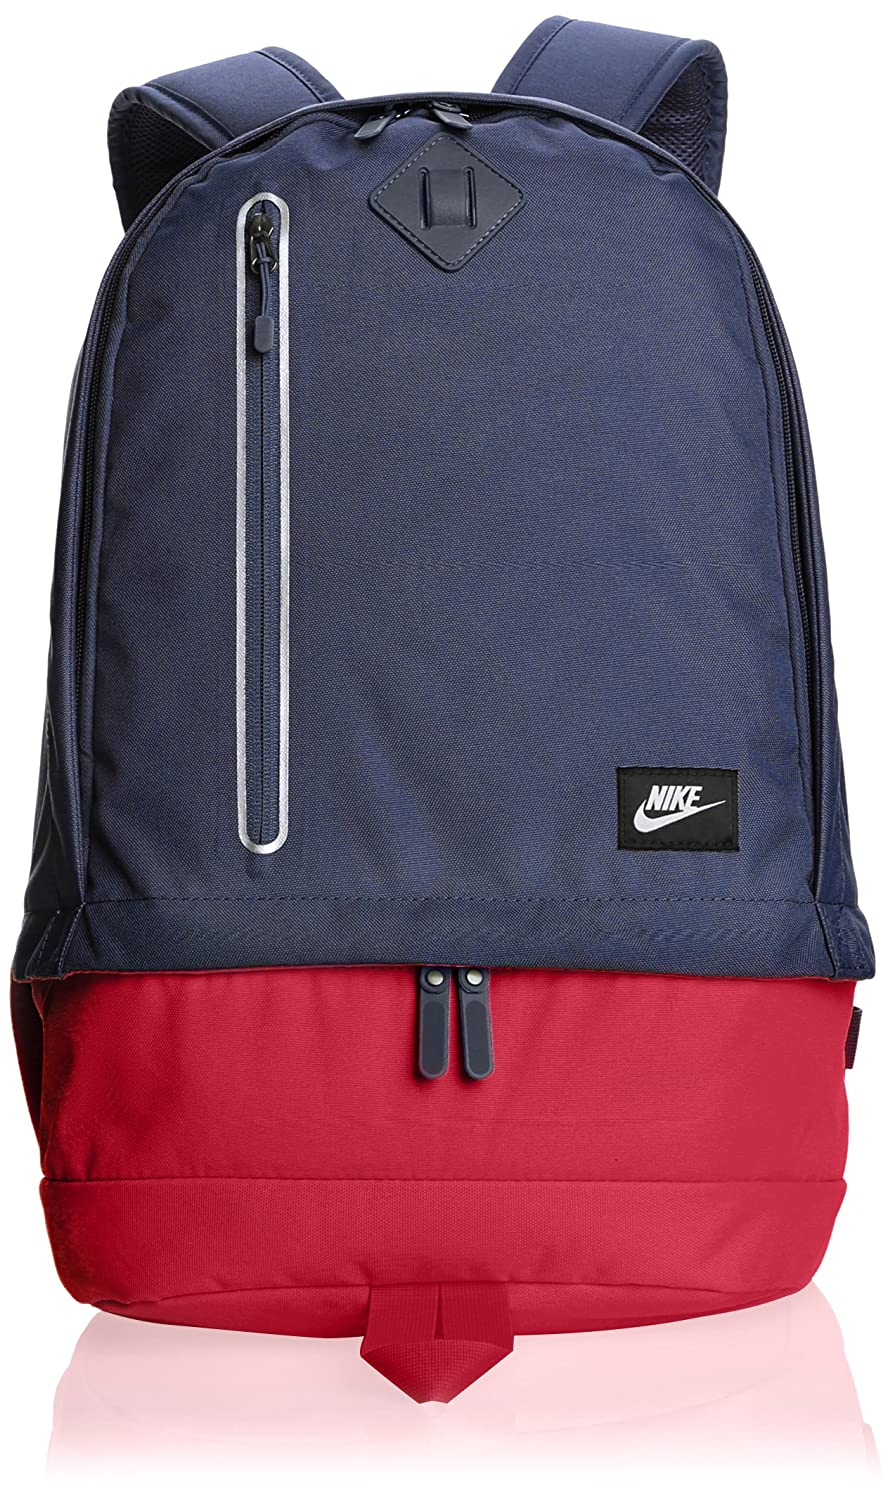 Nike Cheyenne 2000 Classic Men s Rucksack Multi-Coloured Midnight  Navy Unvred Silver Size 50 x 25 x 5 cm, 5 Litres  Amazon.co.uk  Sports    Outdoors fd9e7535a1